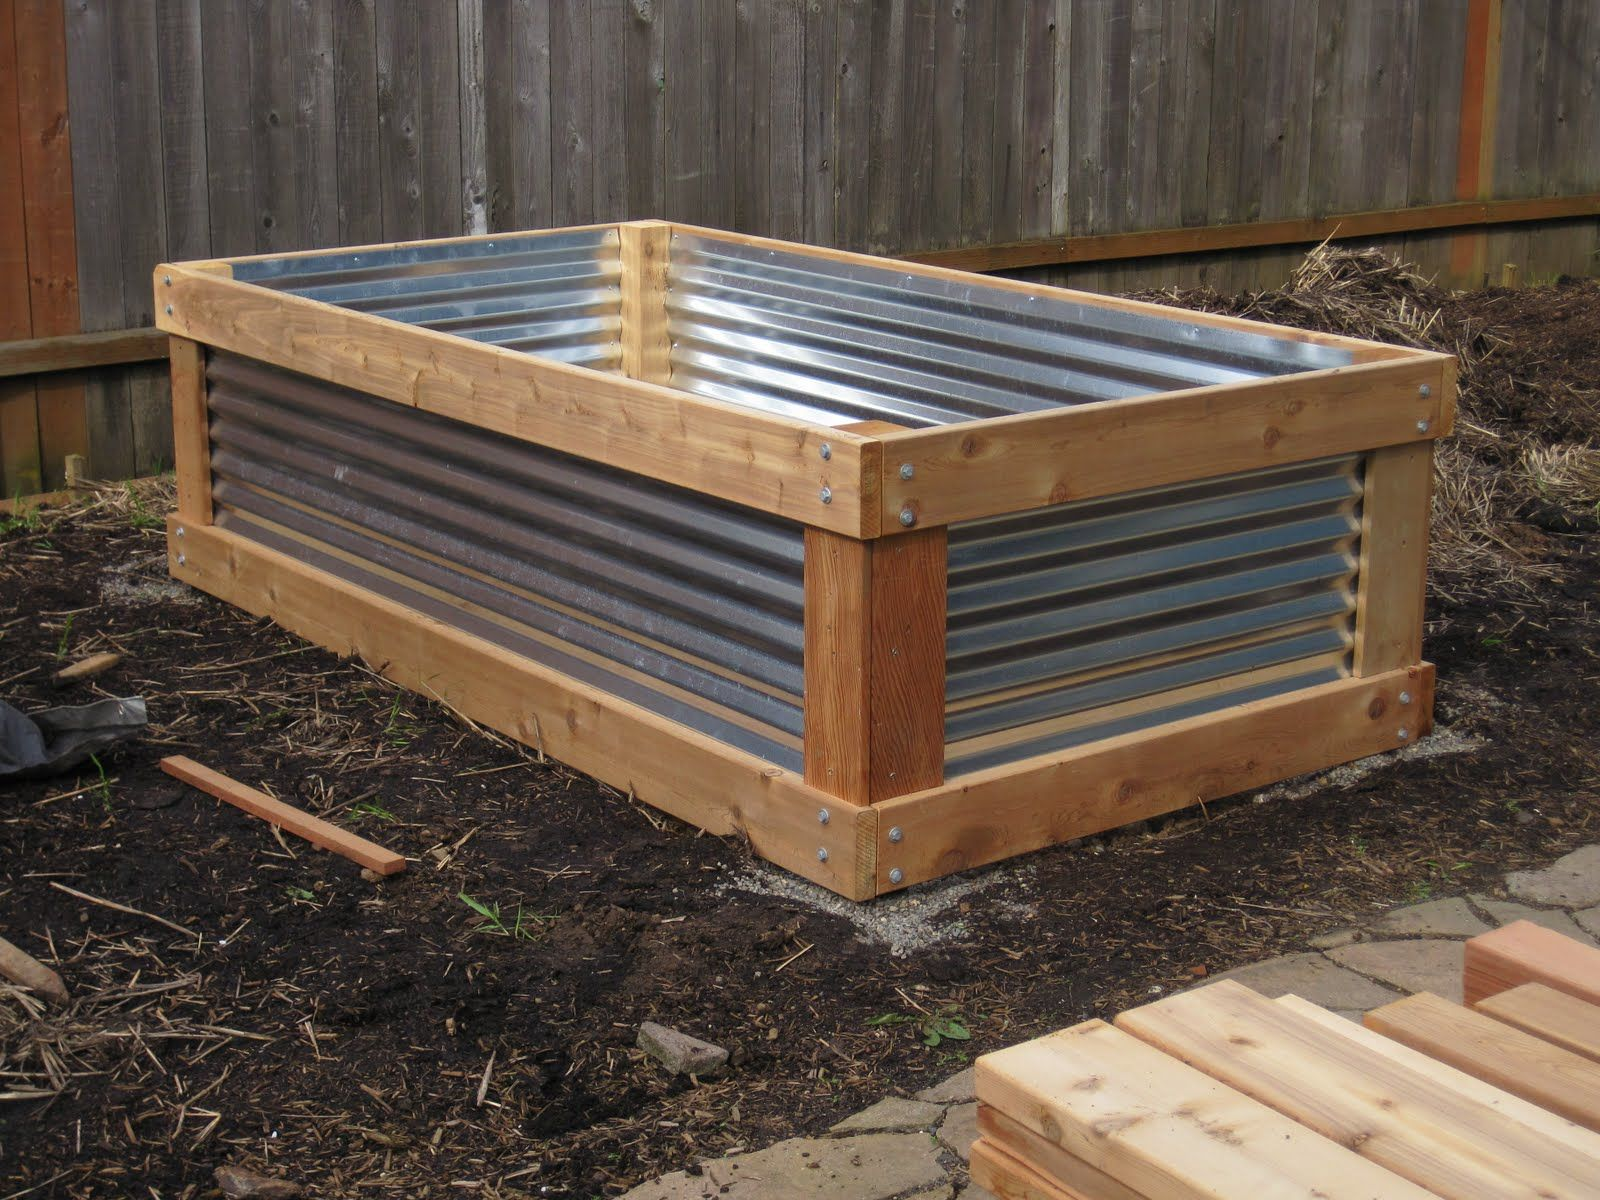 17 Best ideas about Raised Bed Plans on Pinterest Raised garden